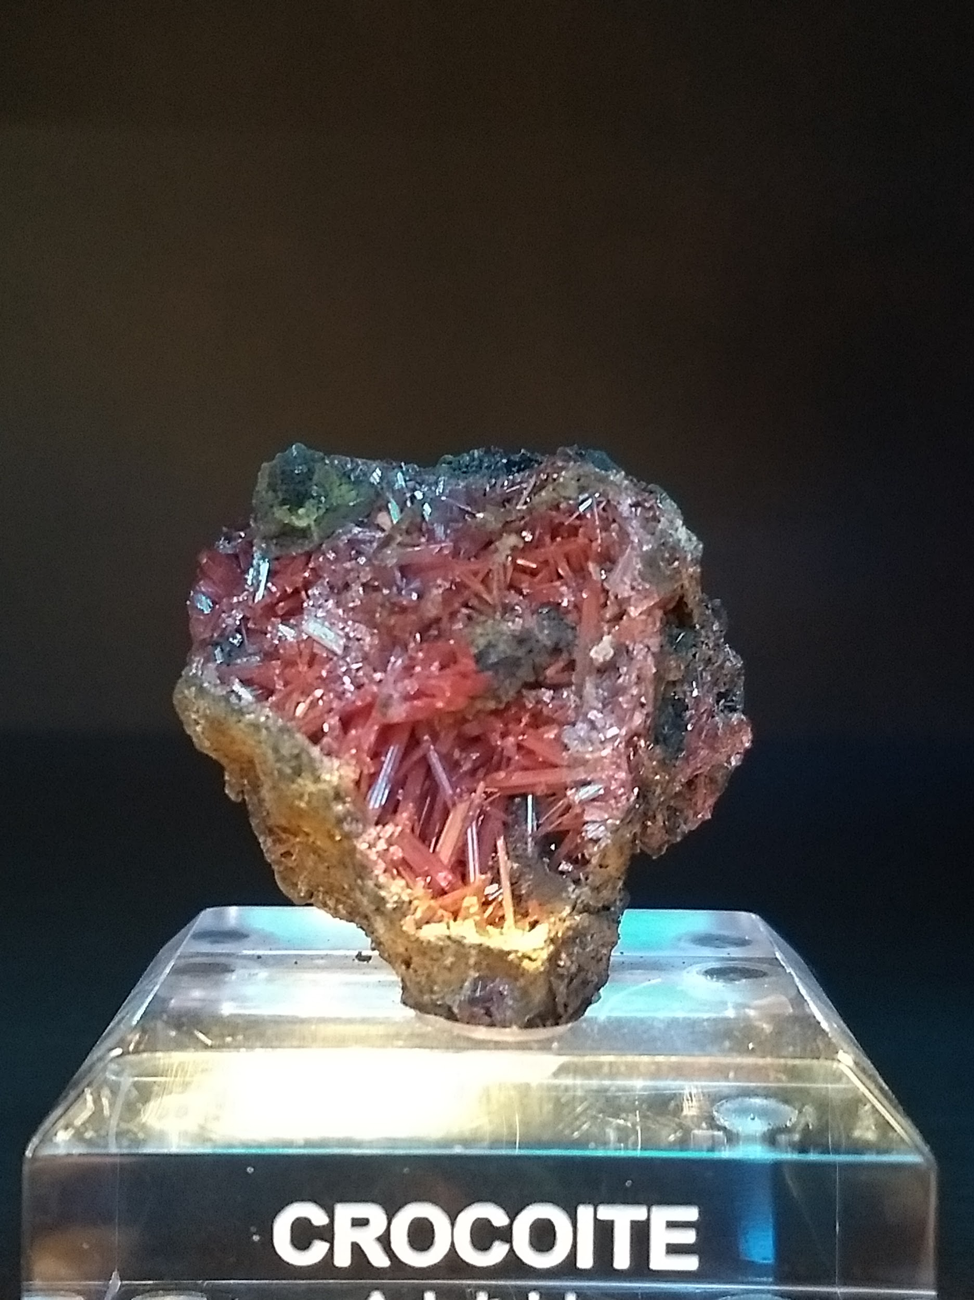 Small specimen with bladed crystals from Adelaide Mine in Tasmania. Photo by Melissa Sorrentino.